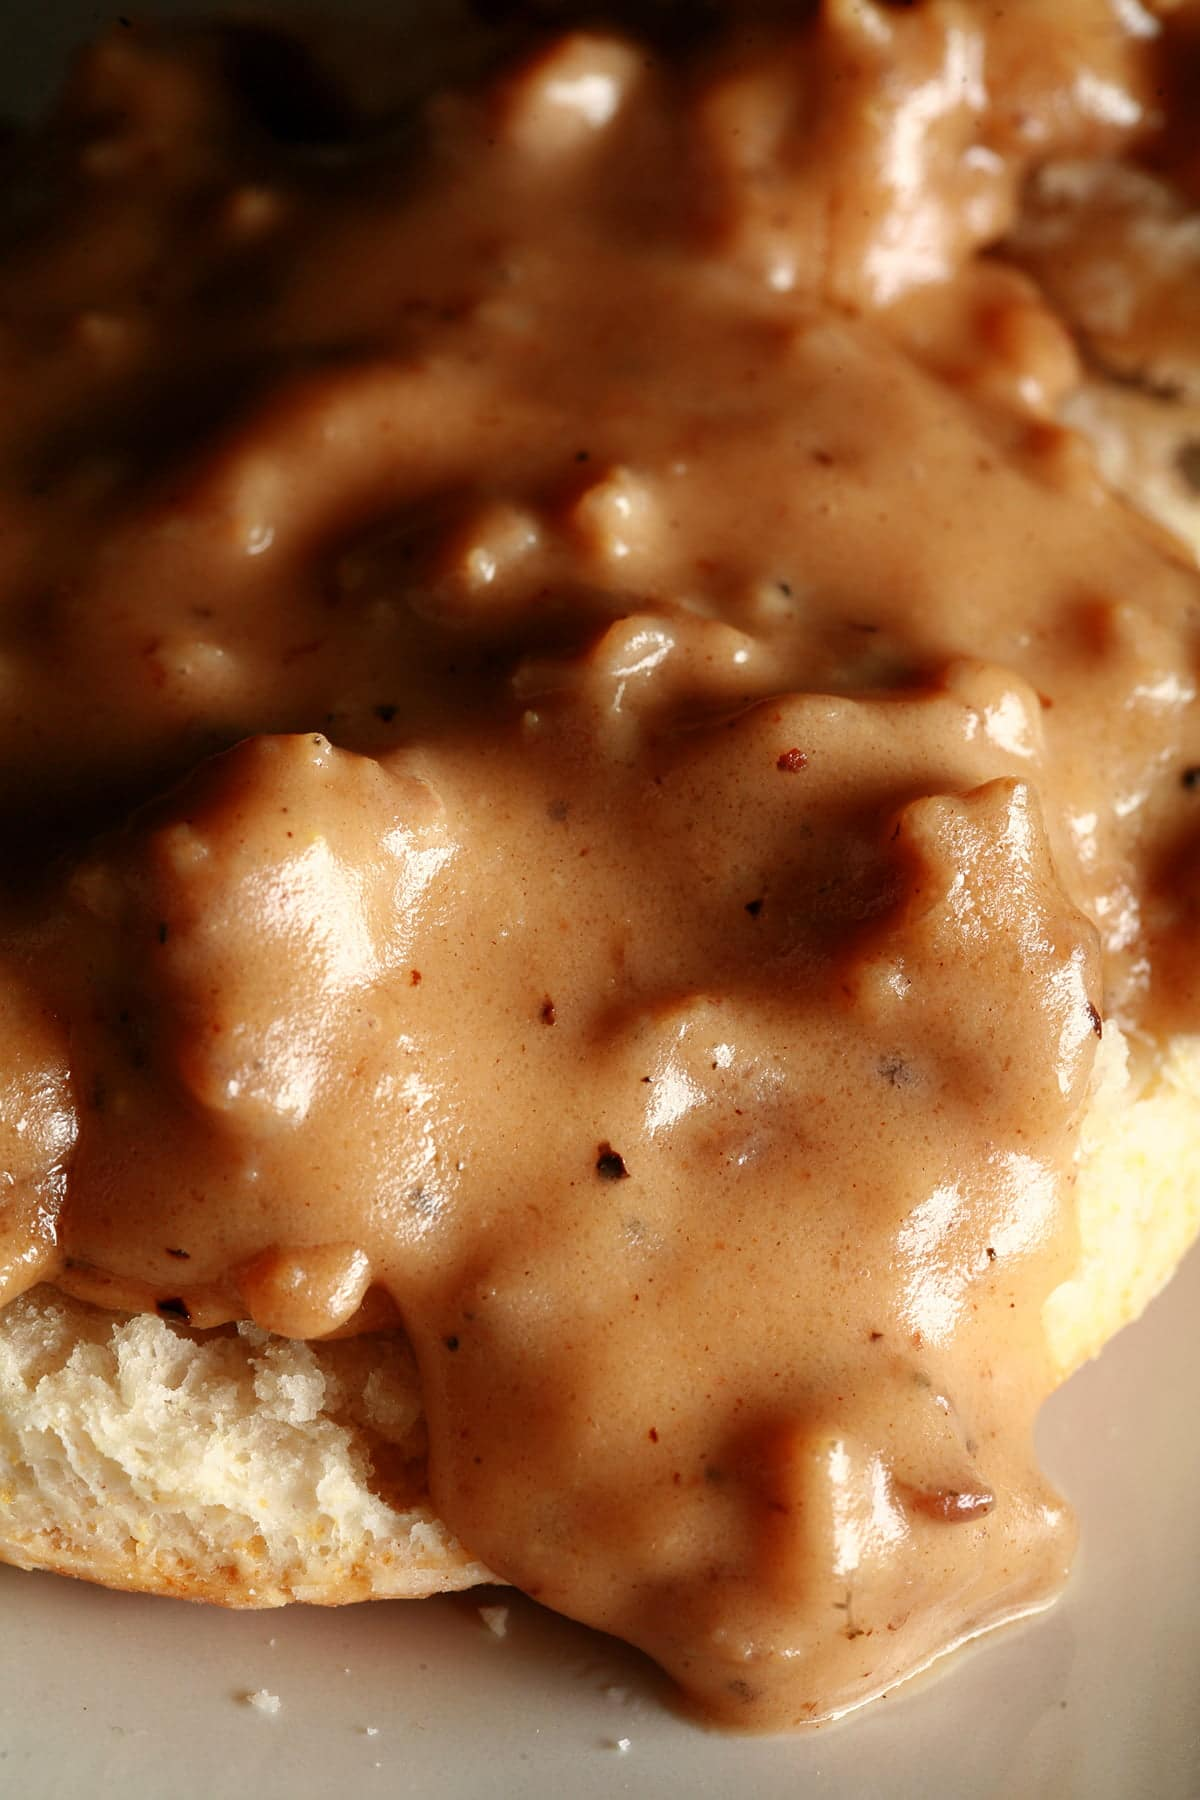 A close up view of a split biscuit covered with sausage gravy.